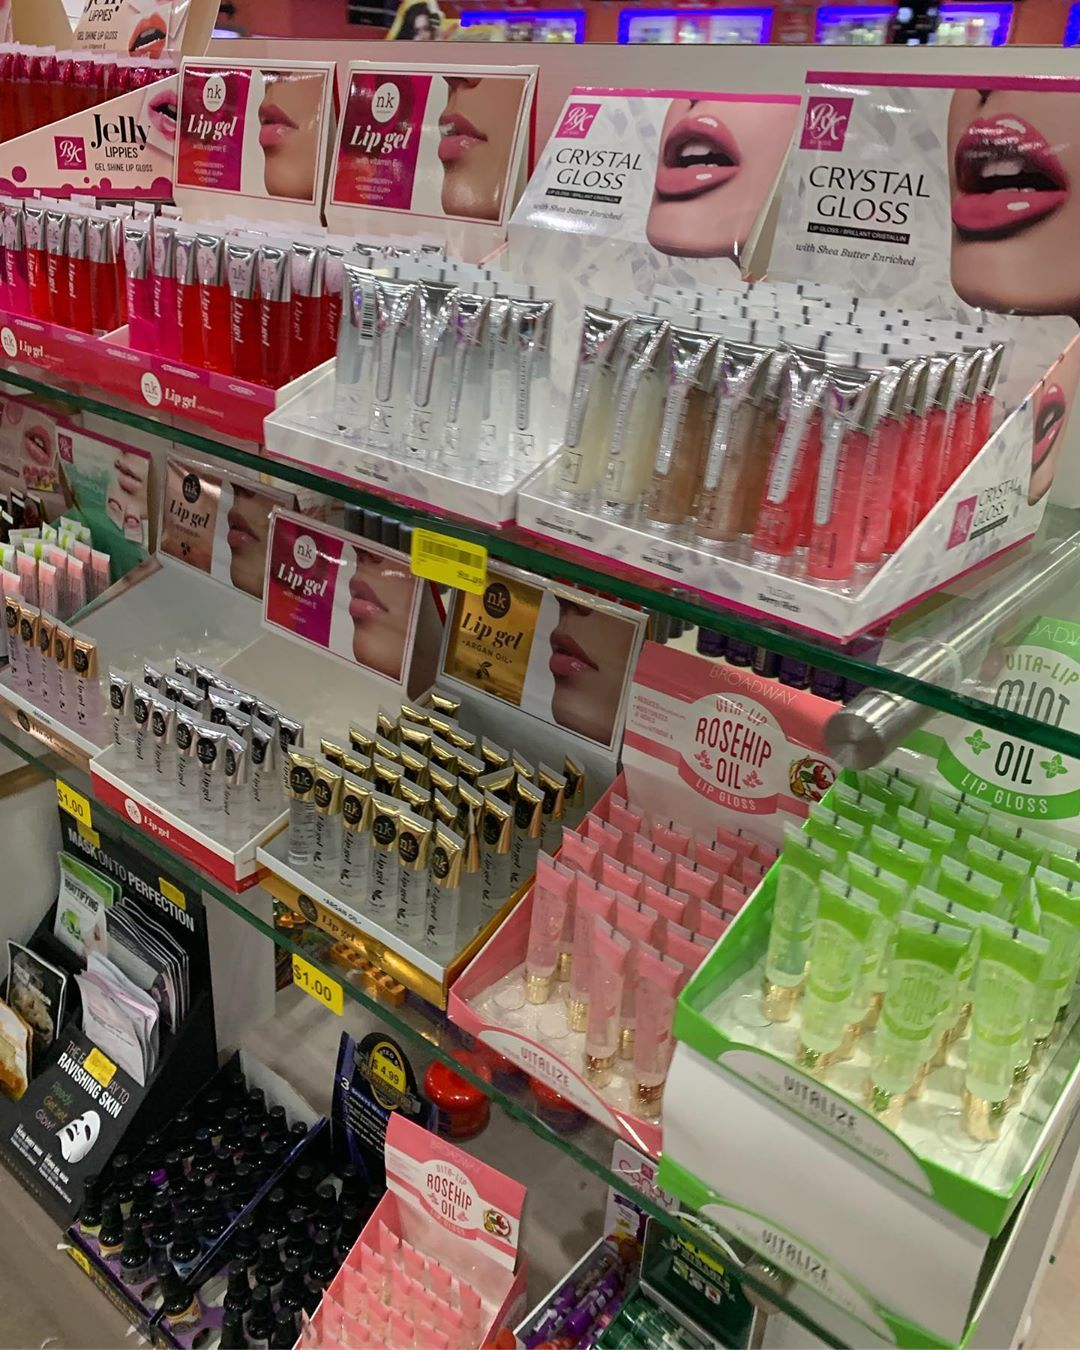 Gloss On Instagram I Never Thought I D Find A Beauty Store This